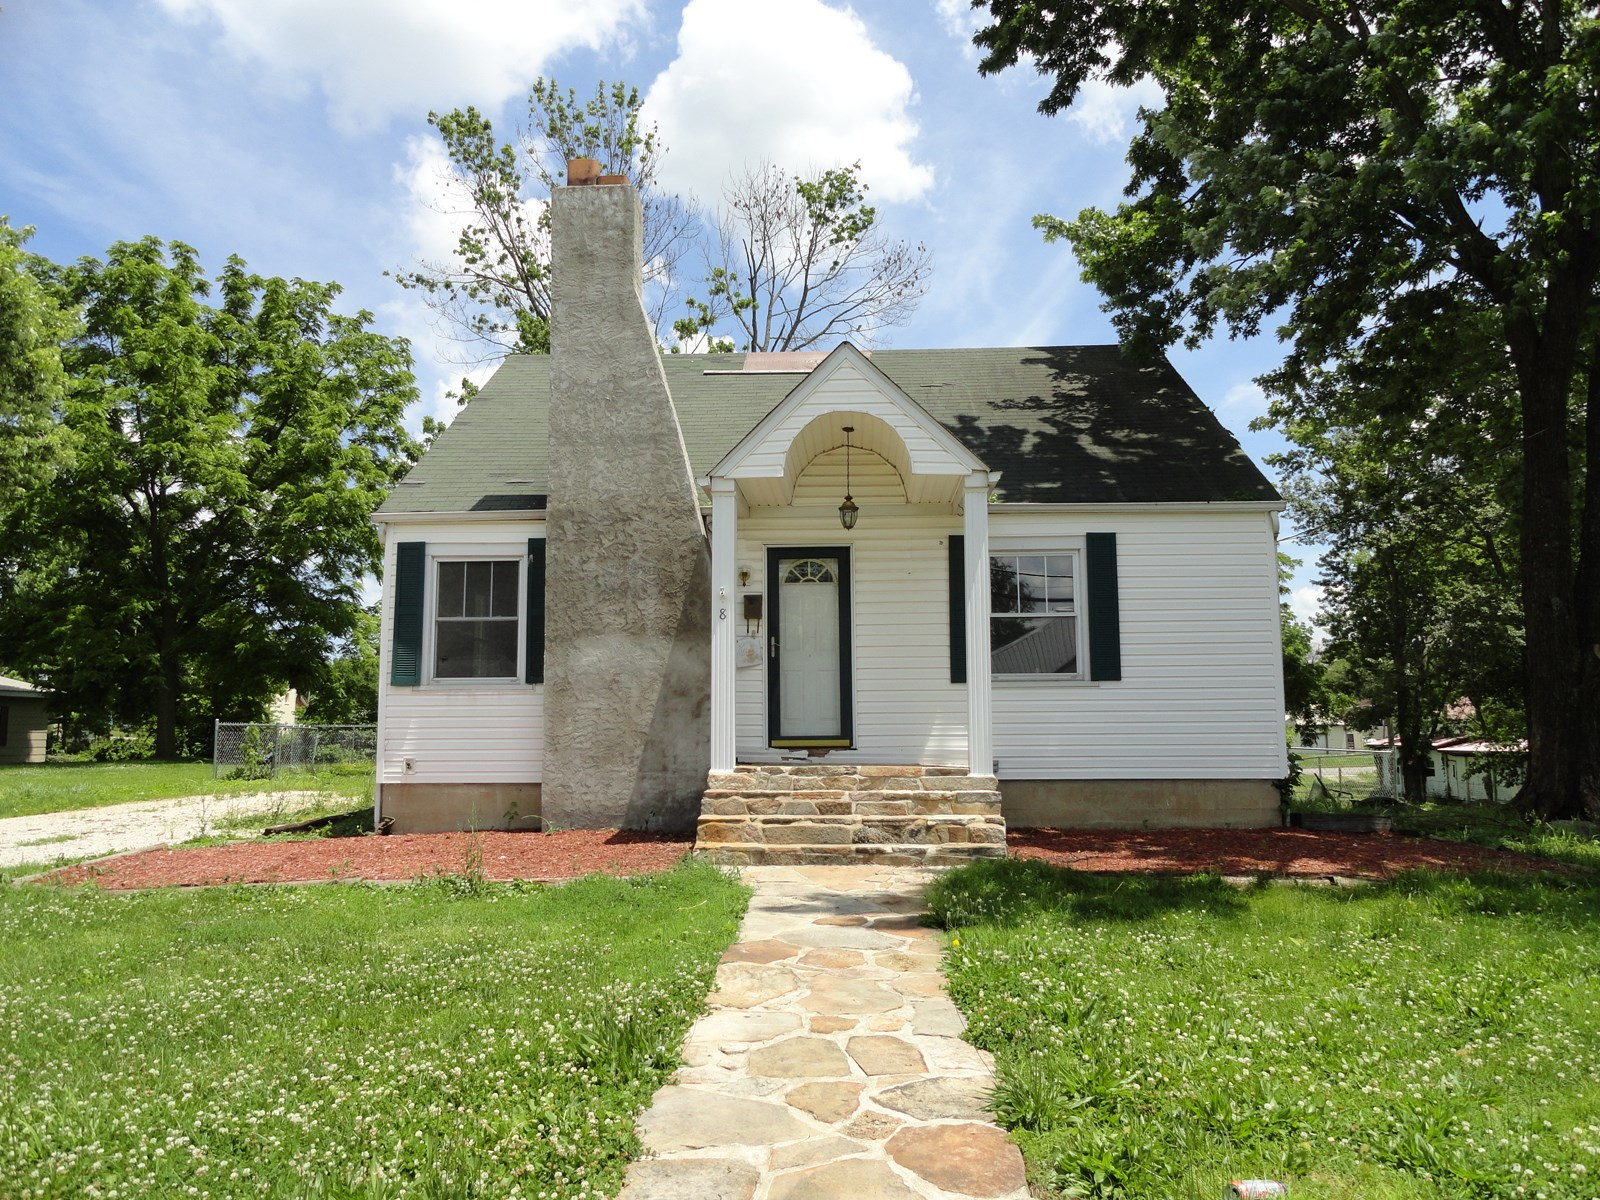 Cottage Style Home for sale in Salem, Missouri